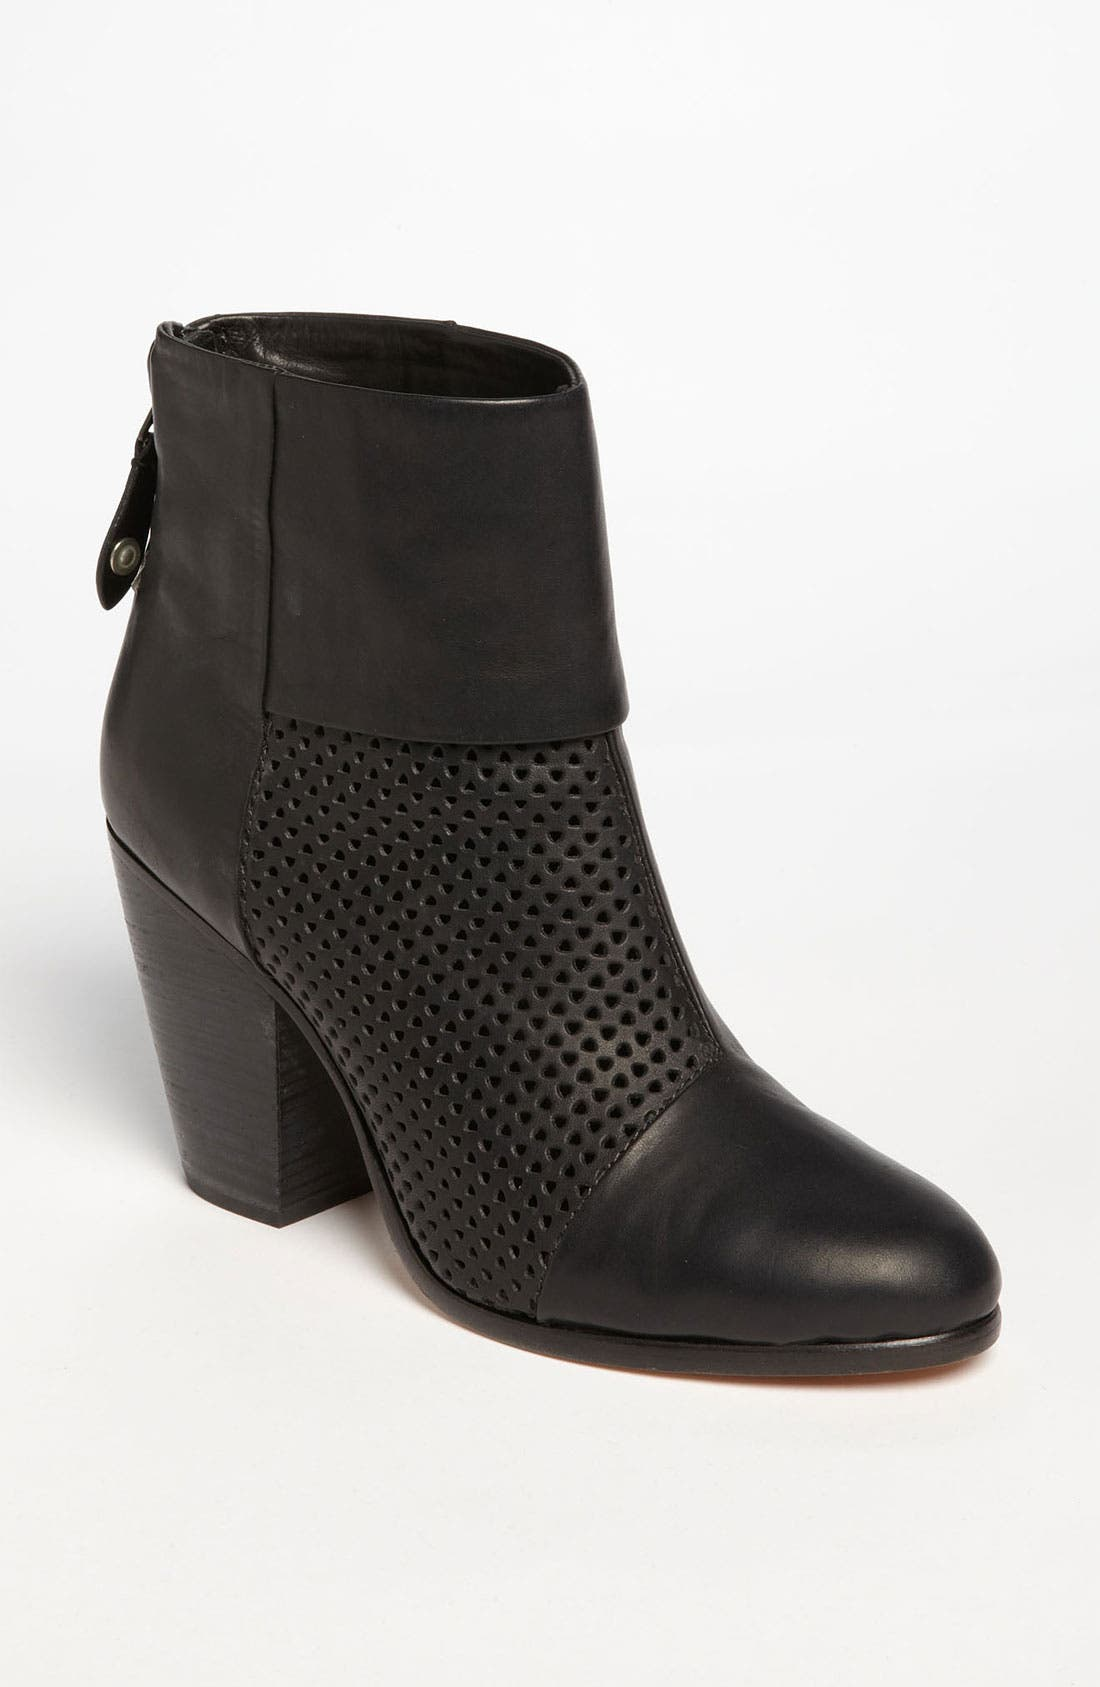 Alternate Image 1 Selected - rag & bone 'Newbury' Bootie